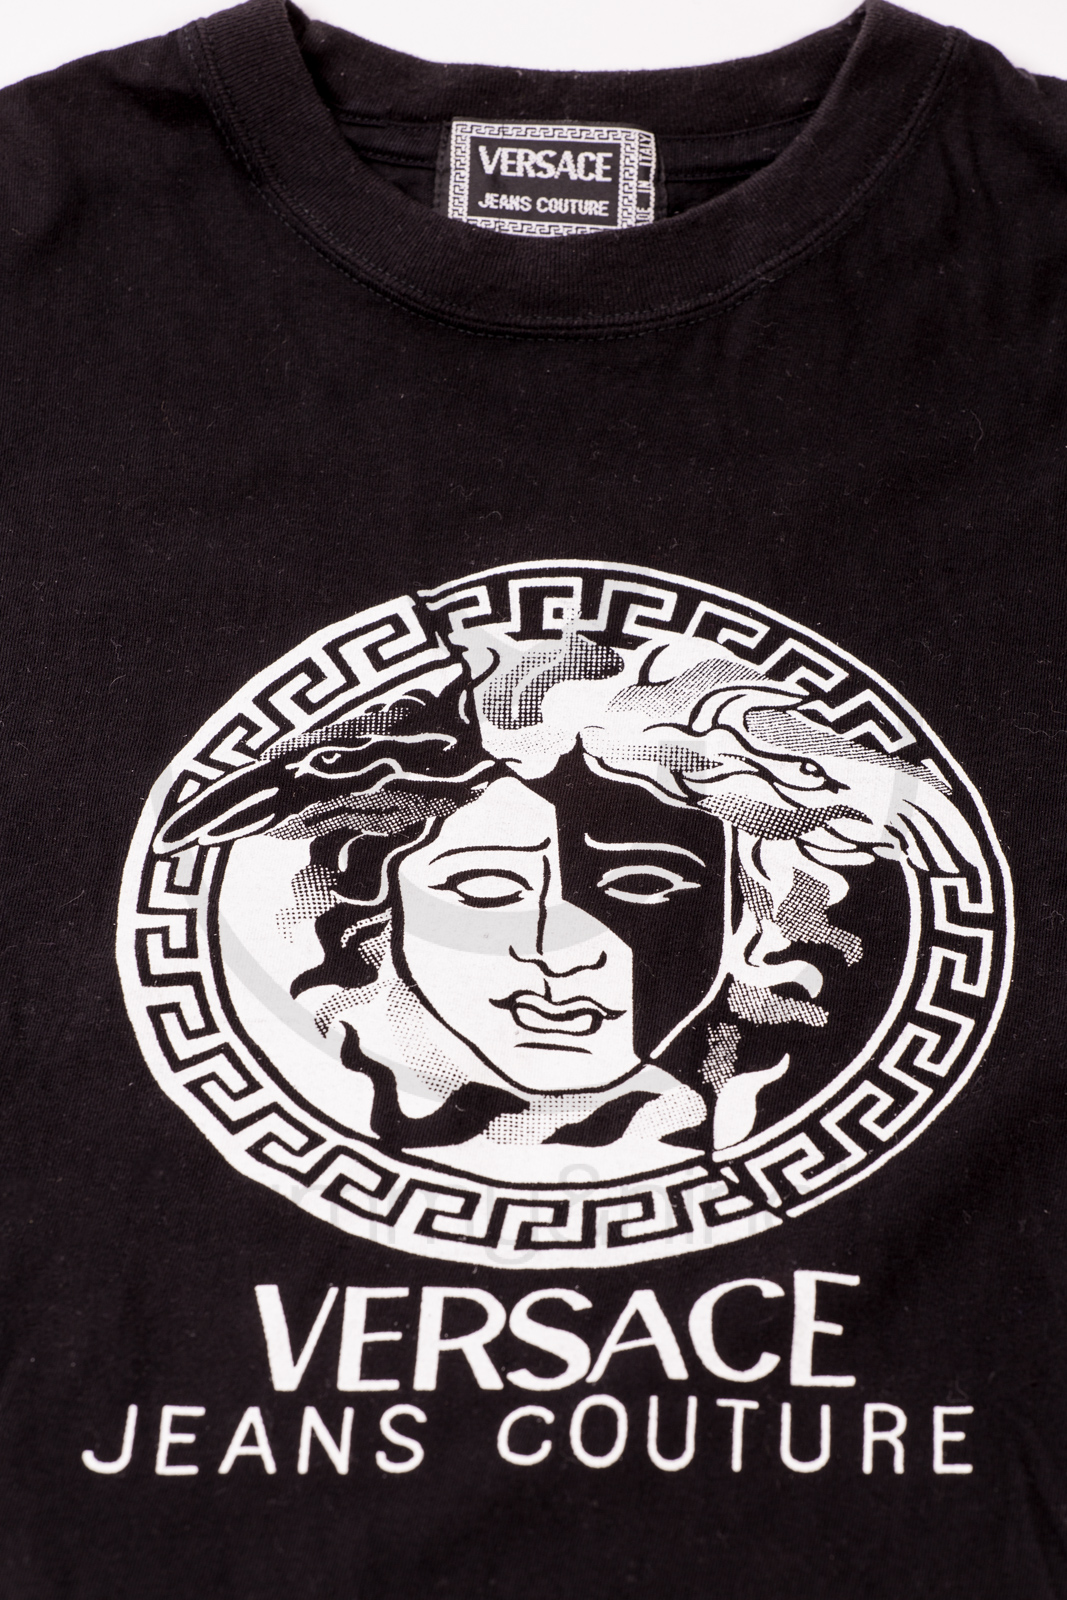 Versace jeans couture long sleeve shirt sammy nino 39 s store for Brand name long sleeve t shirt